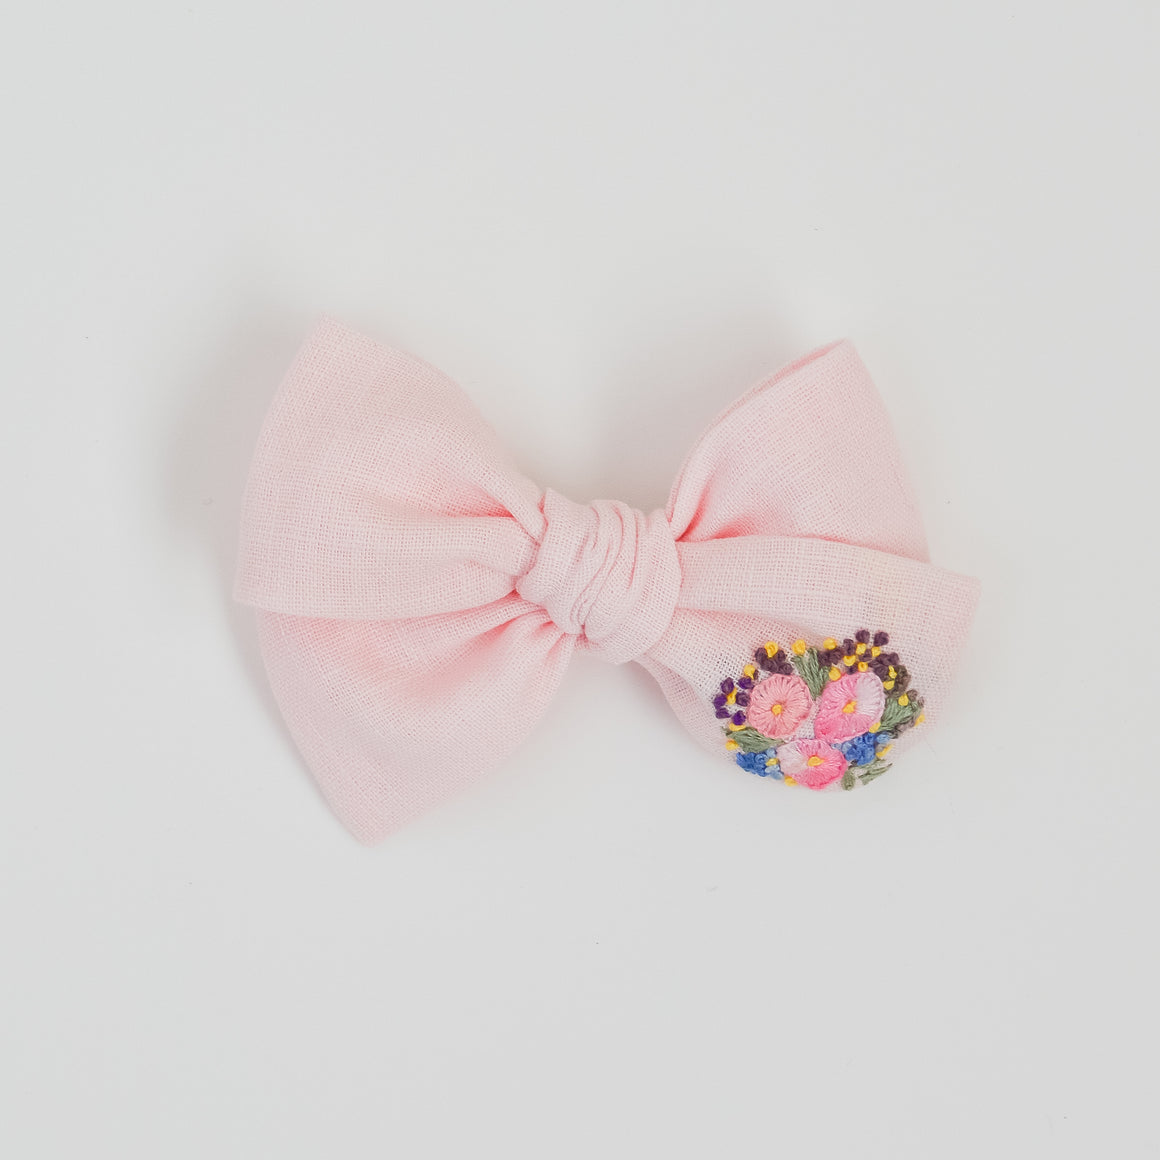 Hand Embroidered Pinwheel Bow - Baby Pink Blooms